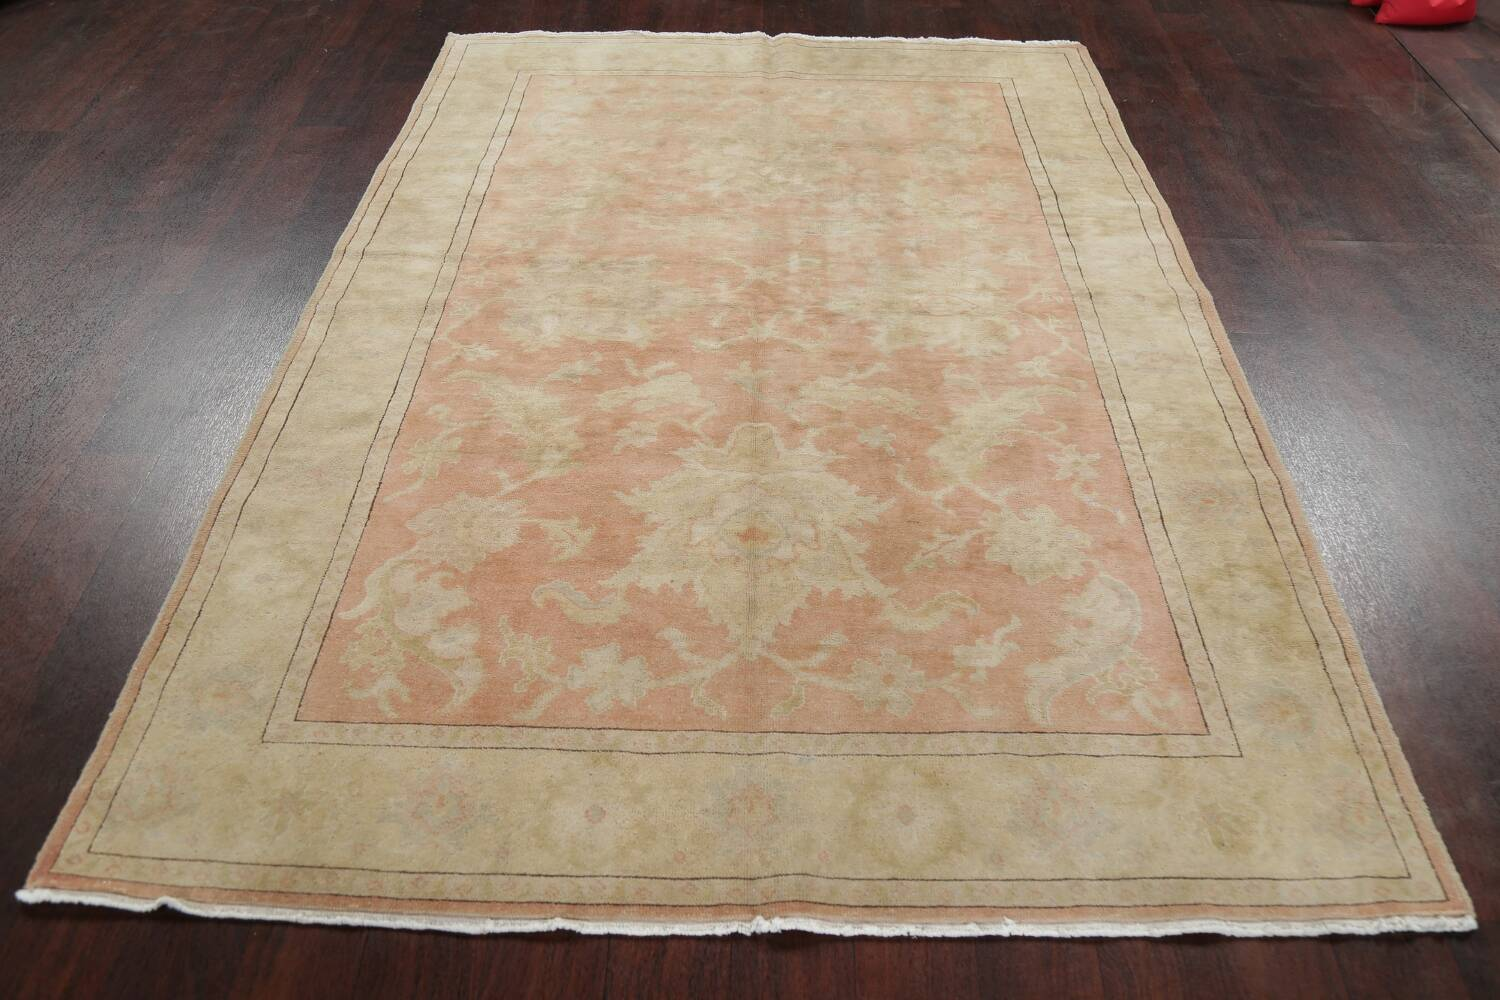 Vegetable Dye Antique Coral Peach Egyptian Area Rug 5x7 image 16